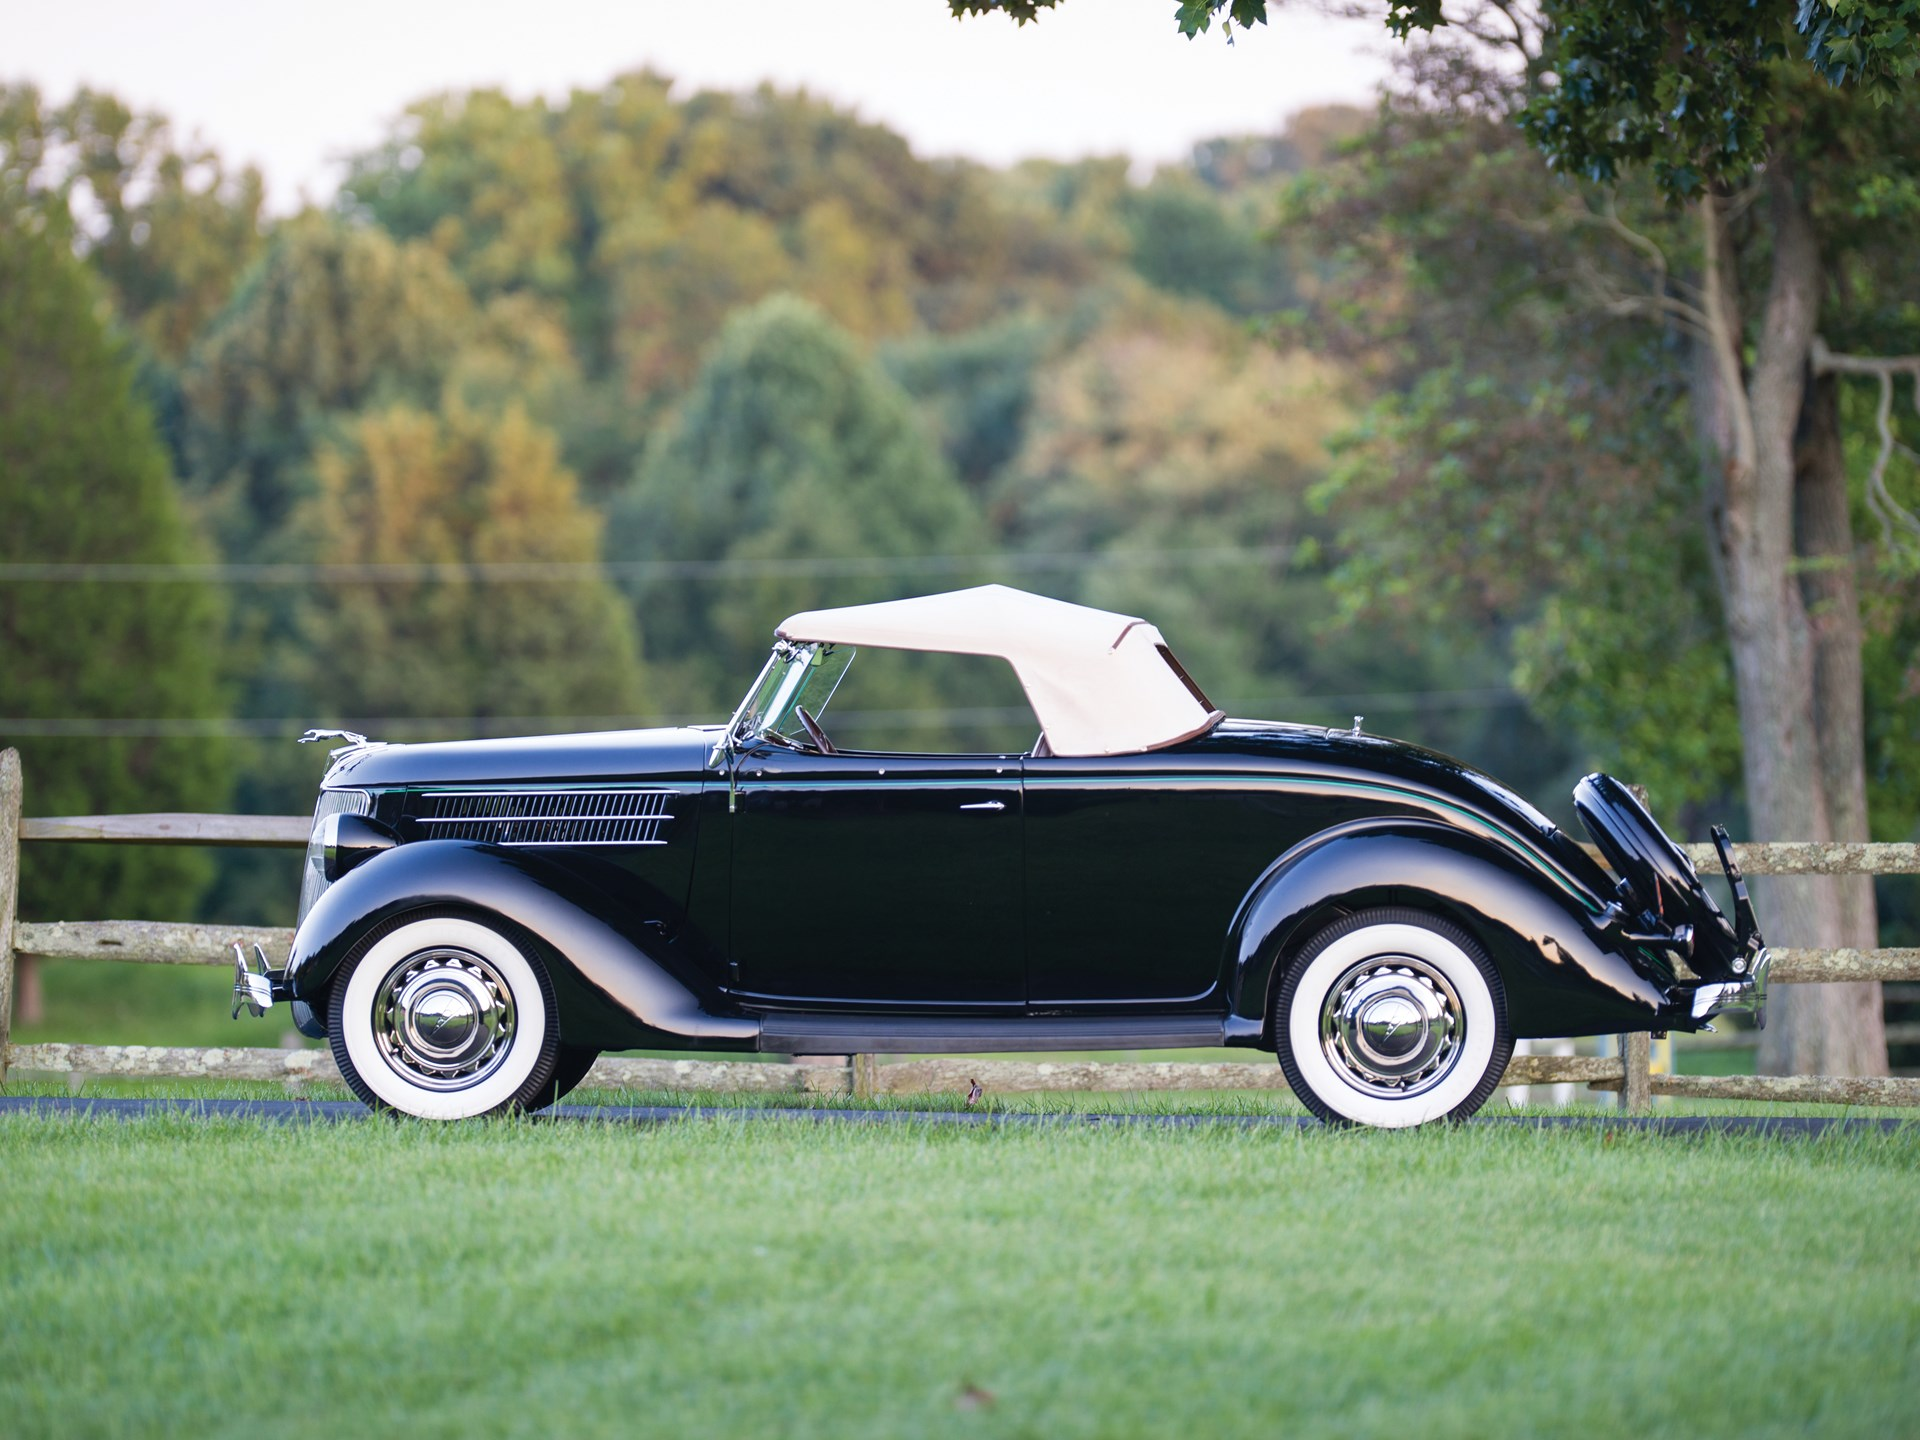 RM Sotheby's - 1936 Ford V-8 DeLuxe Roadster | Hershey 2015